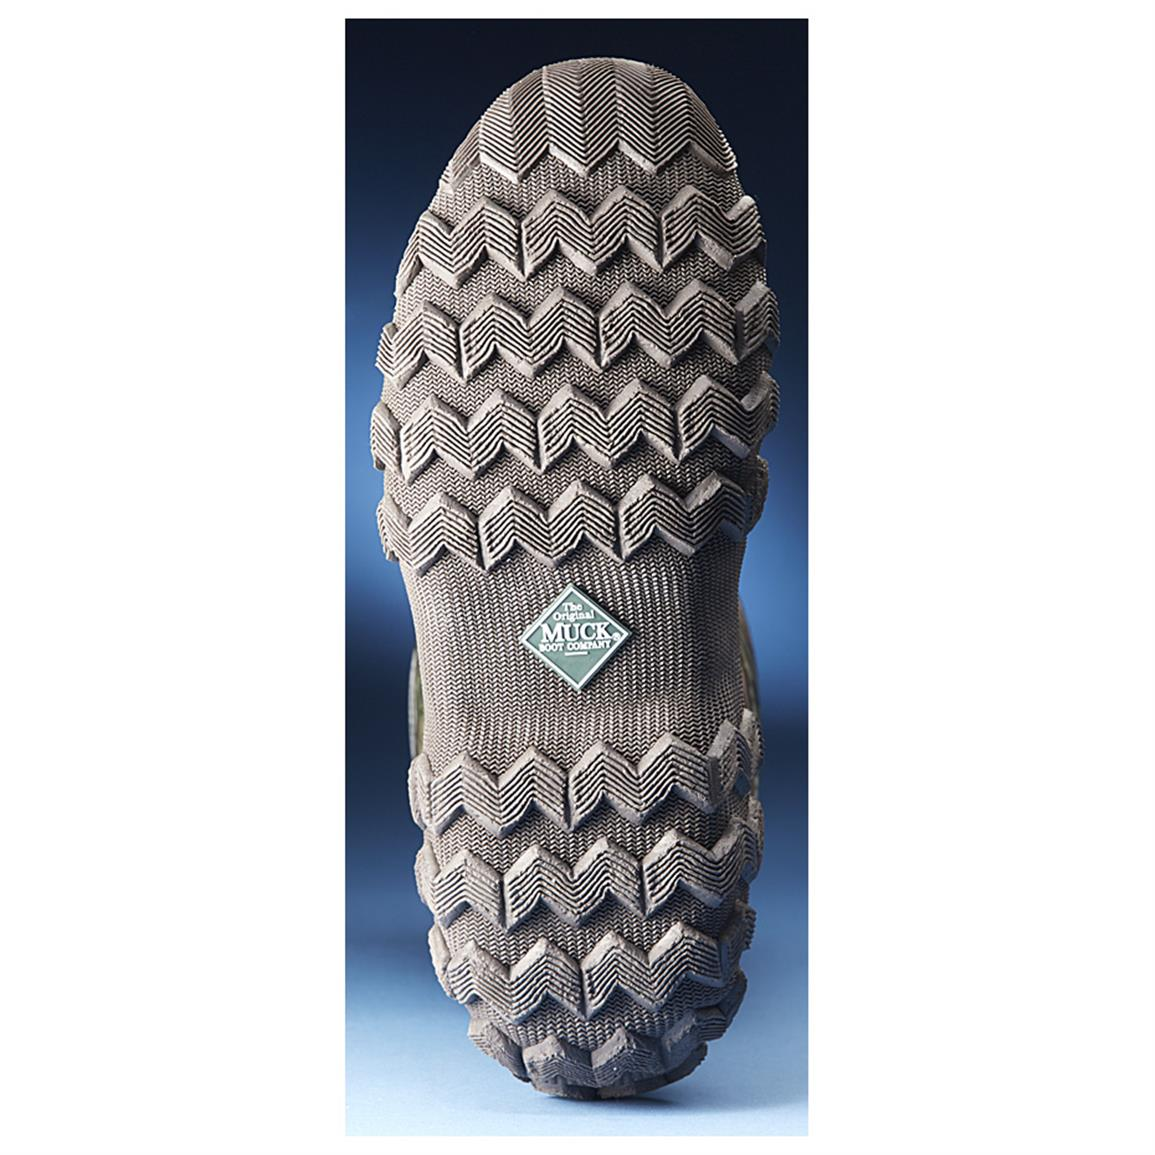 Aggressive waffle outsole for confident traction